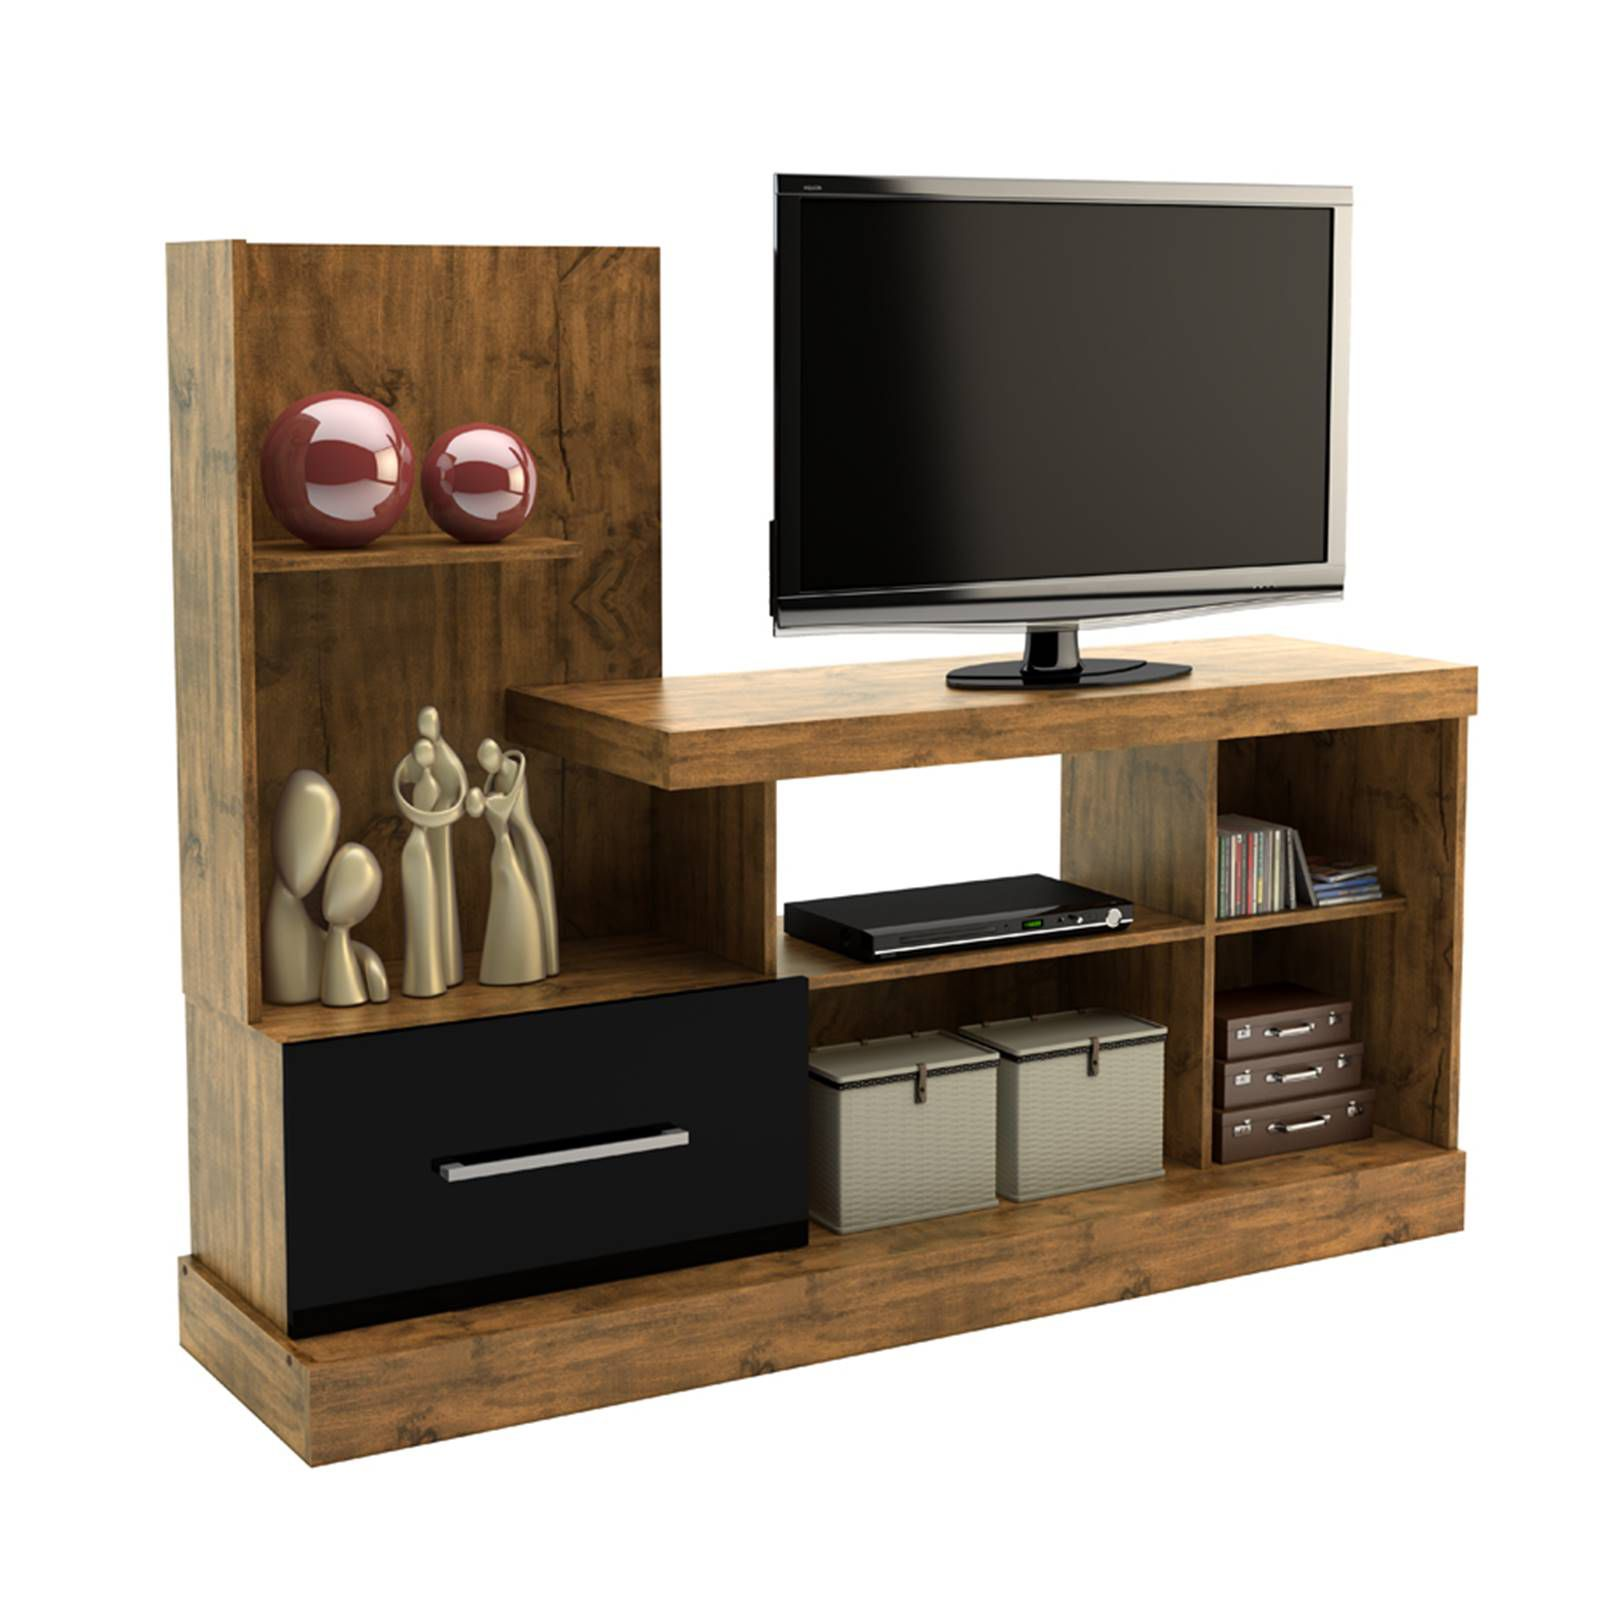 Rack p/ TV R207 Dalla Costa Nobre/Preto